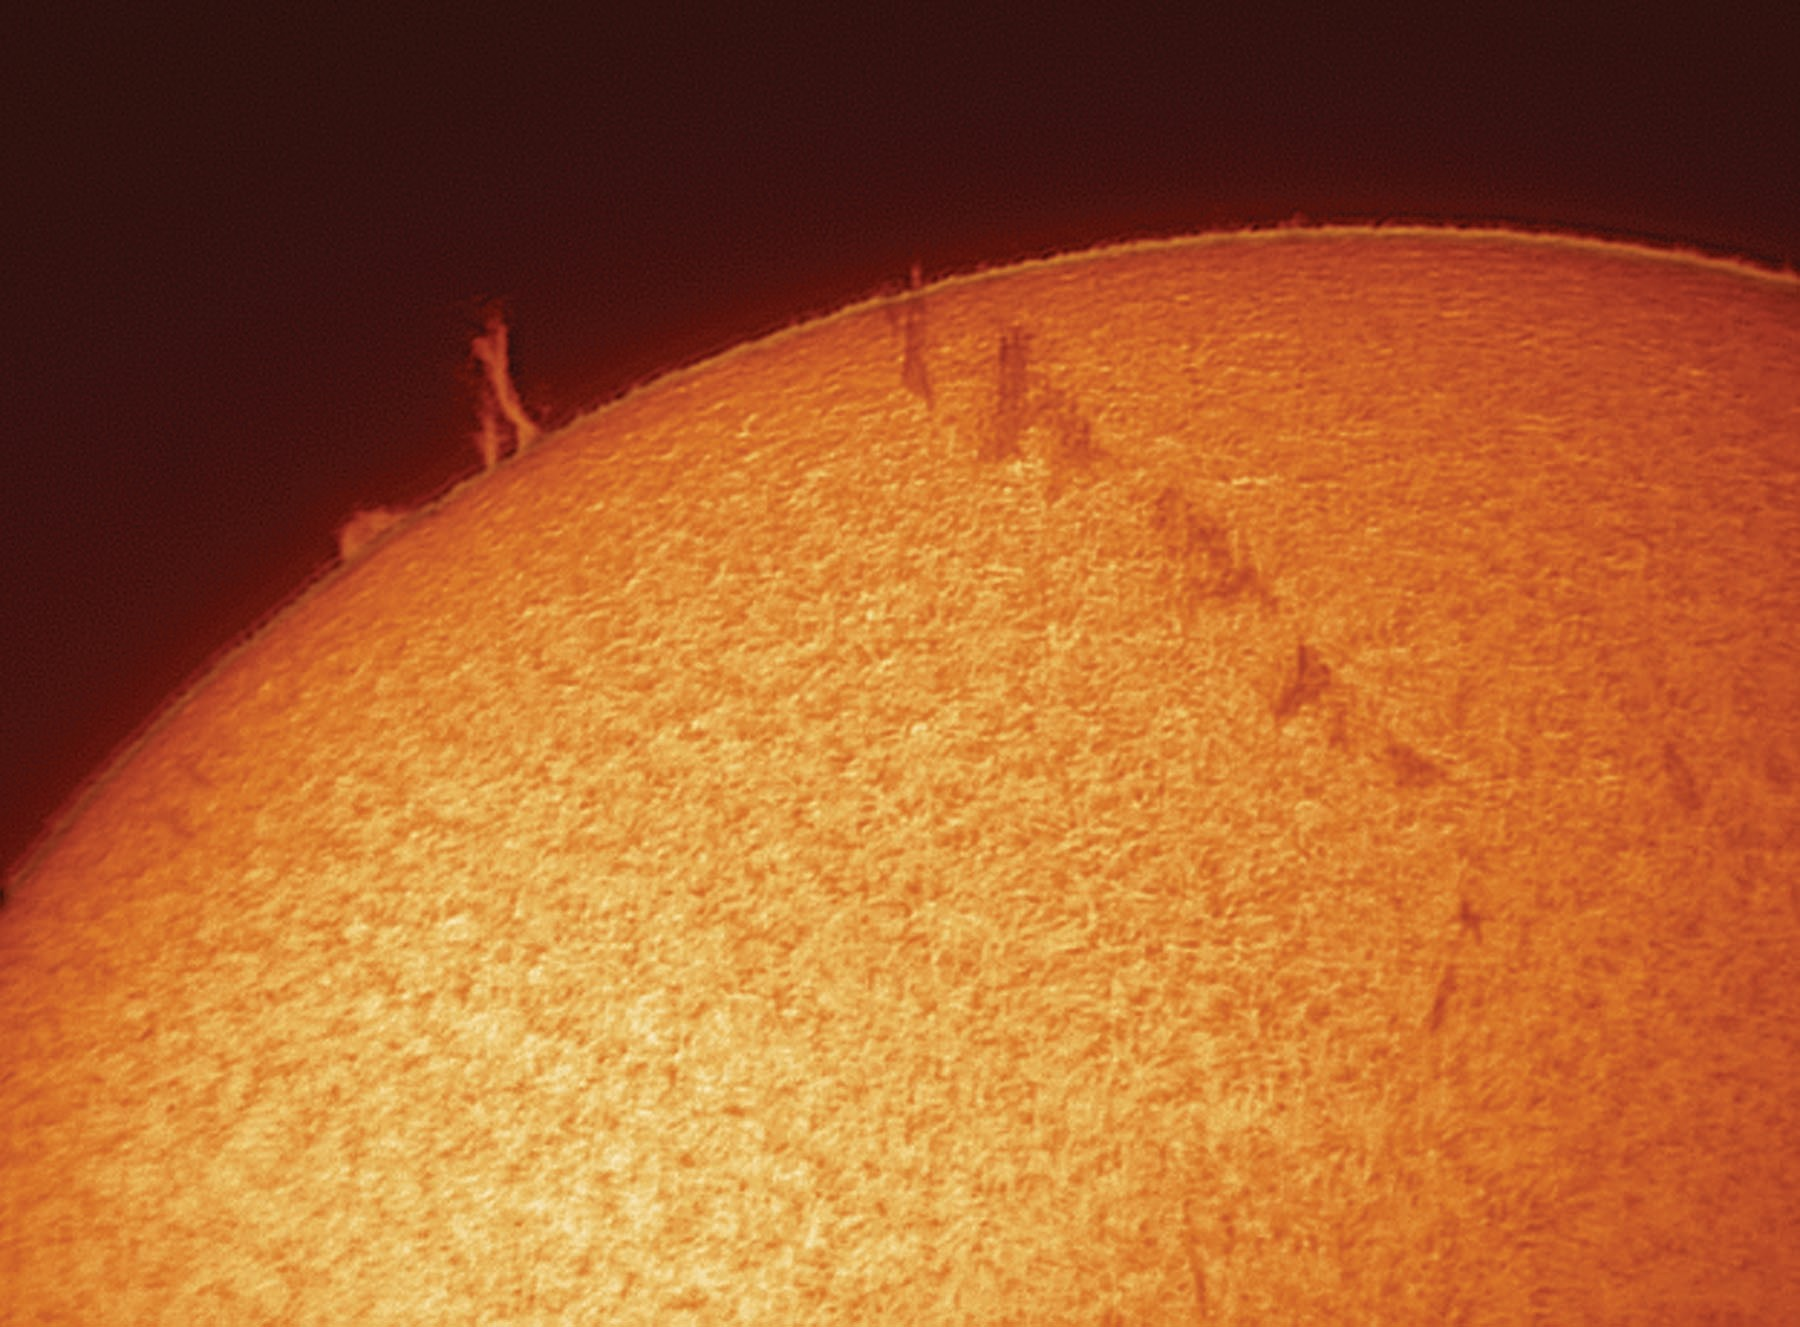 A Coronado PST can deliver stunning shots with prominences leaping off the Sun's limb. Credit: Pete Lawrence